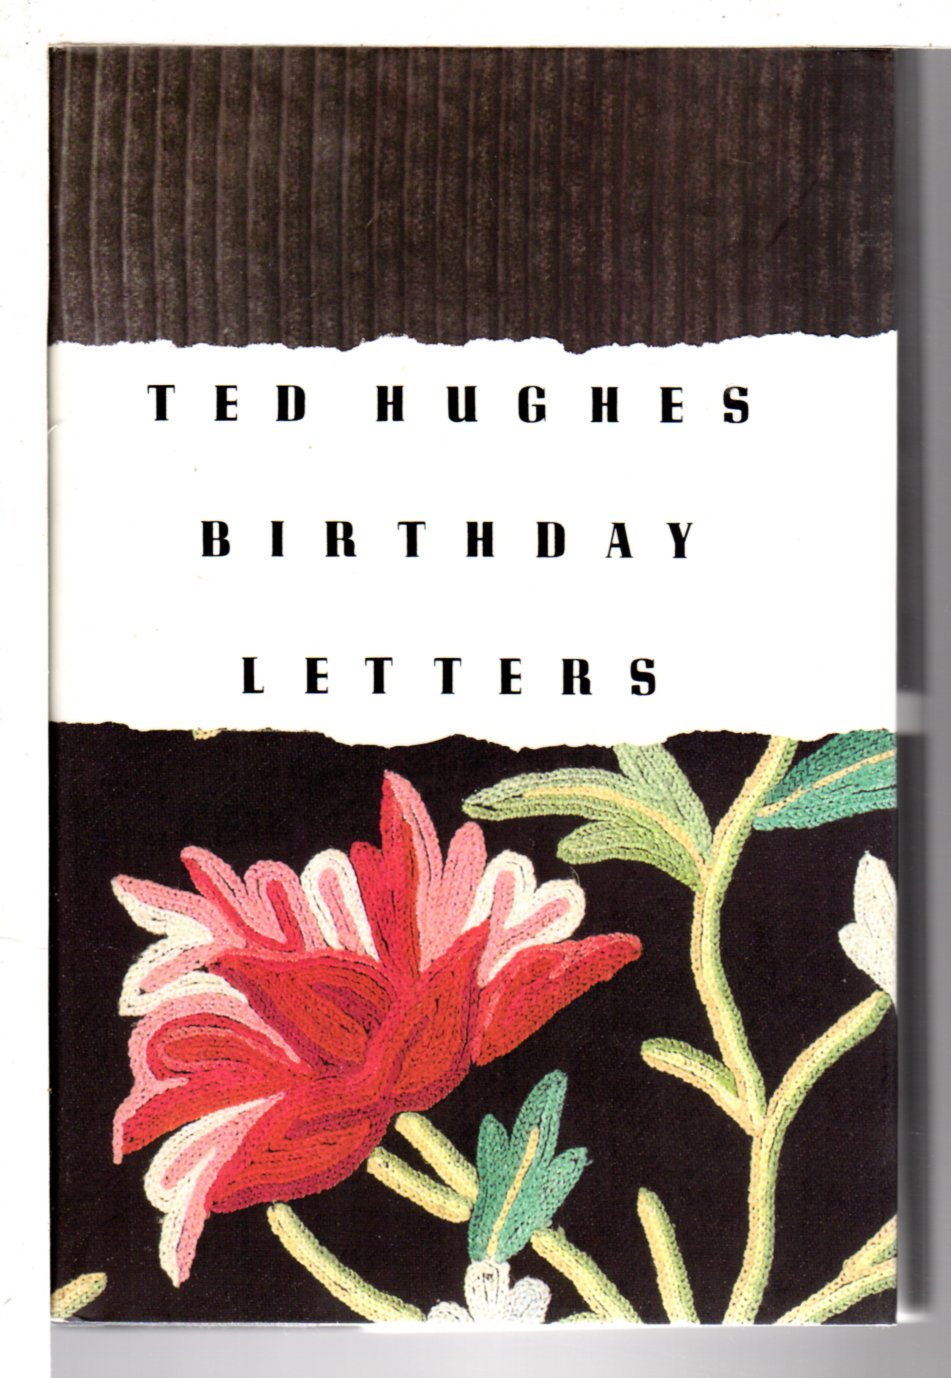 HUGHES, TED. - THE BIRTHDAY LETTERS.